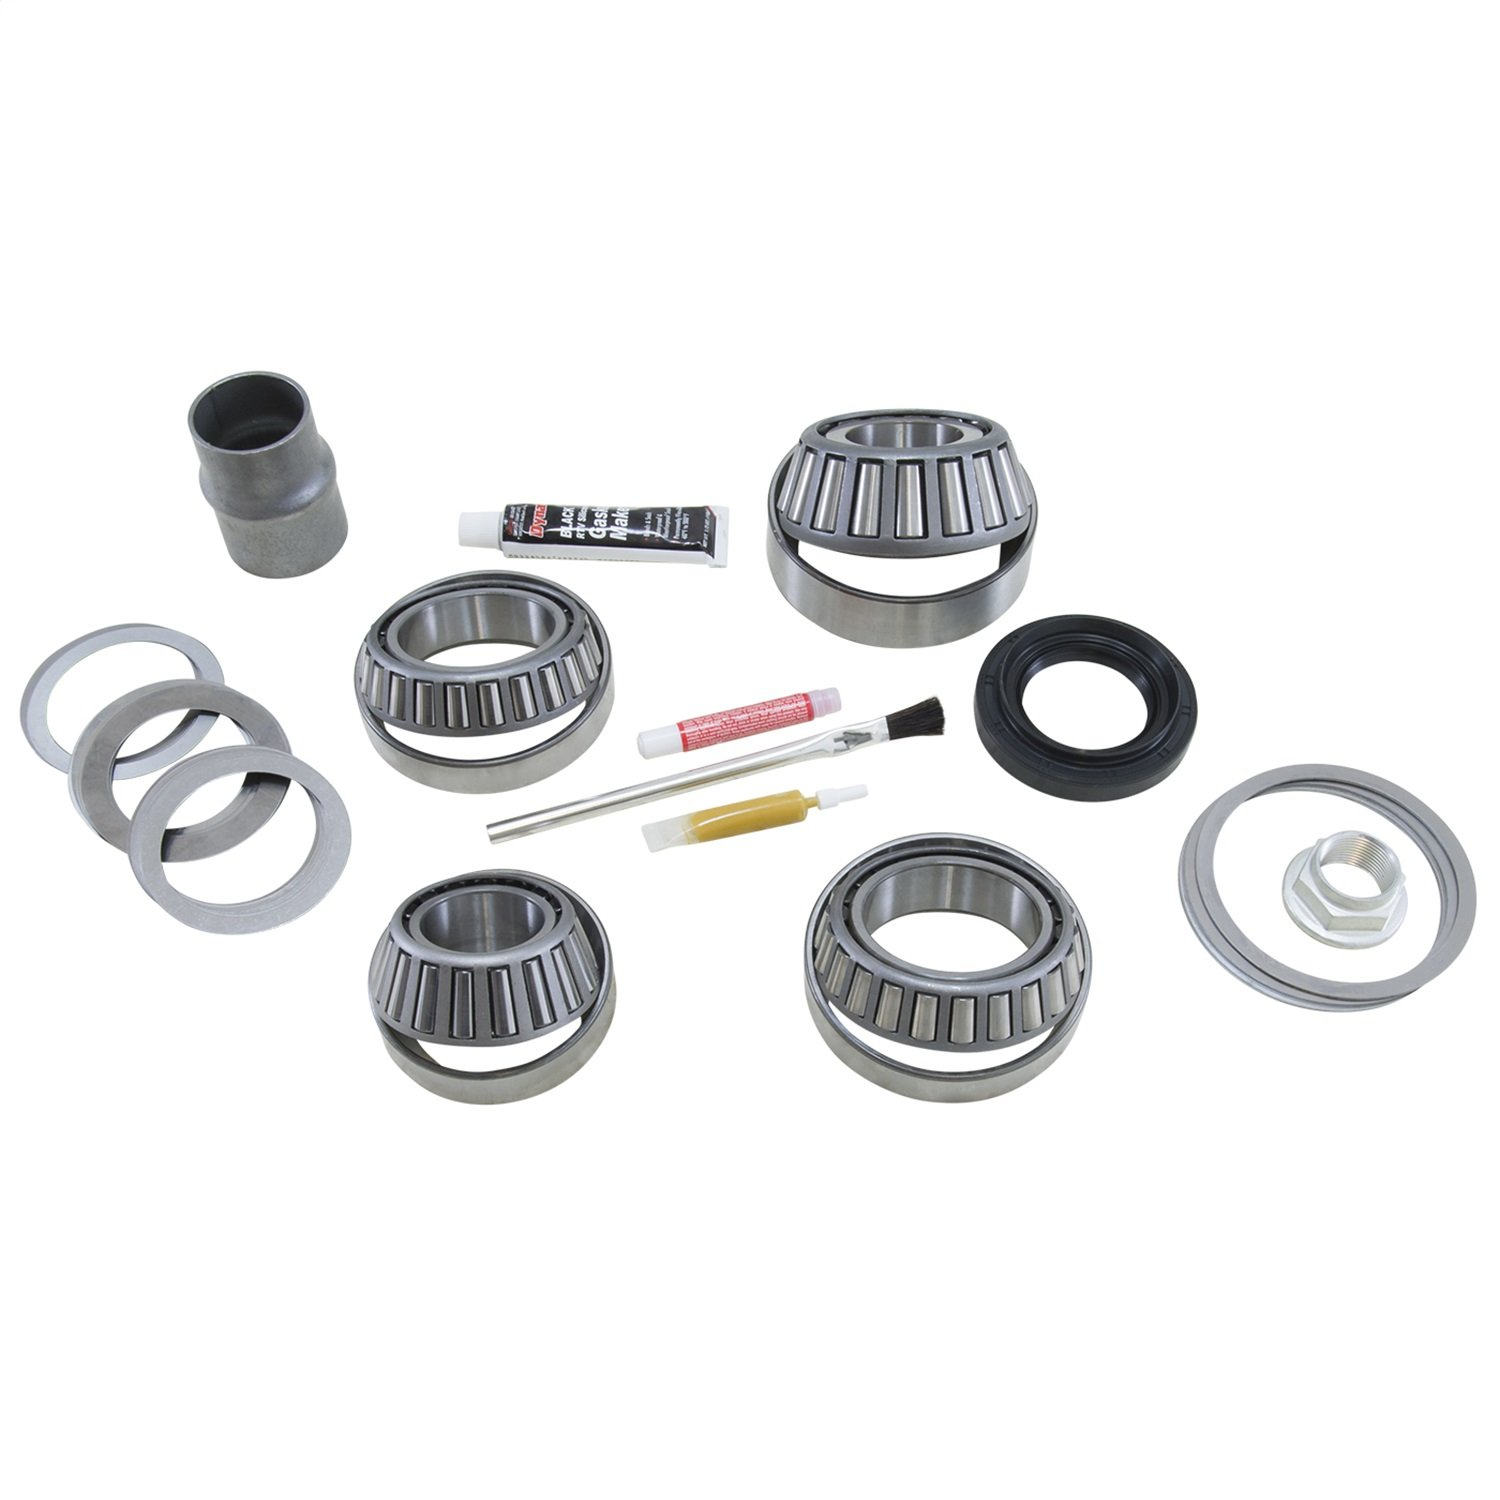 Yukon YKT100 Master Overhaul Kit for Toyota Tacoma